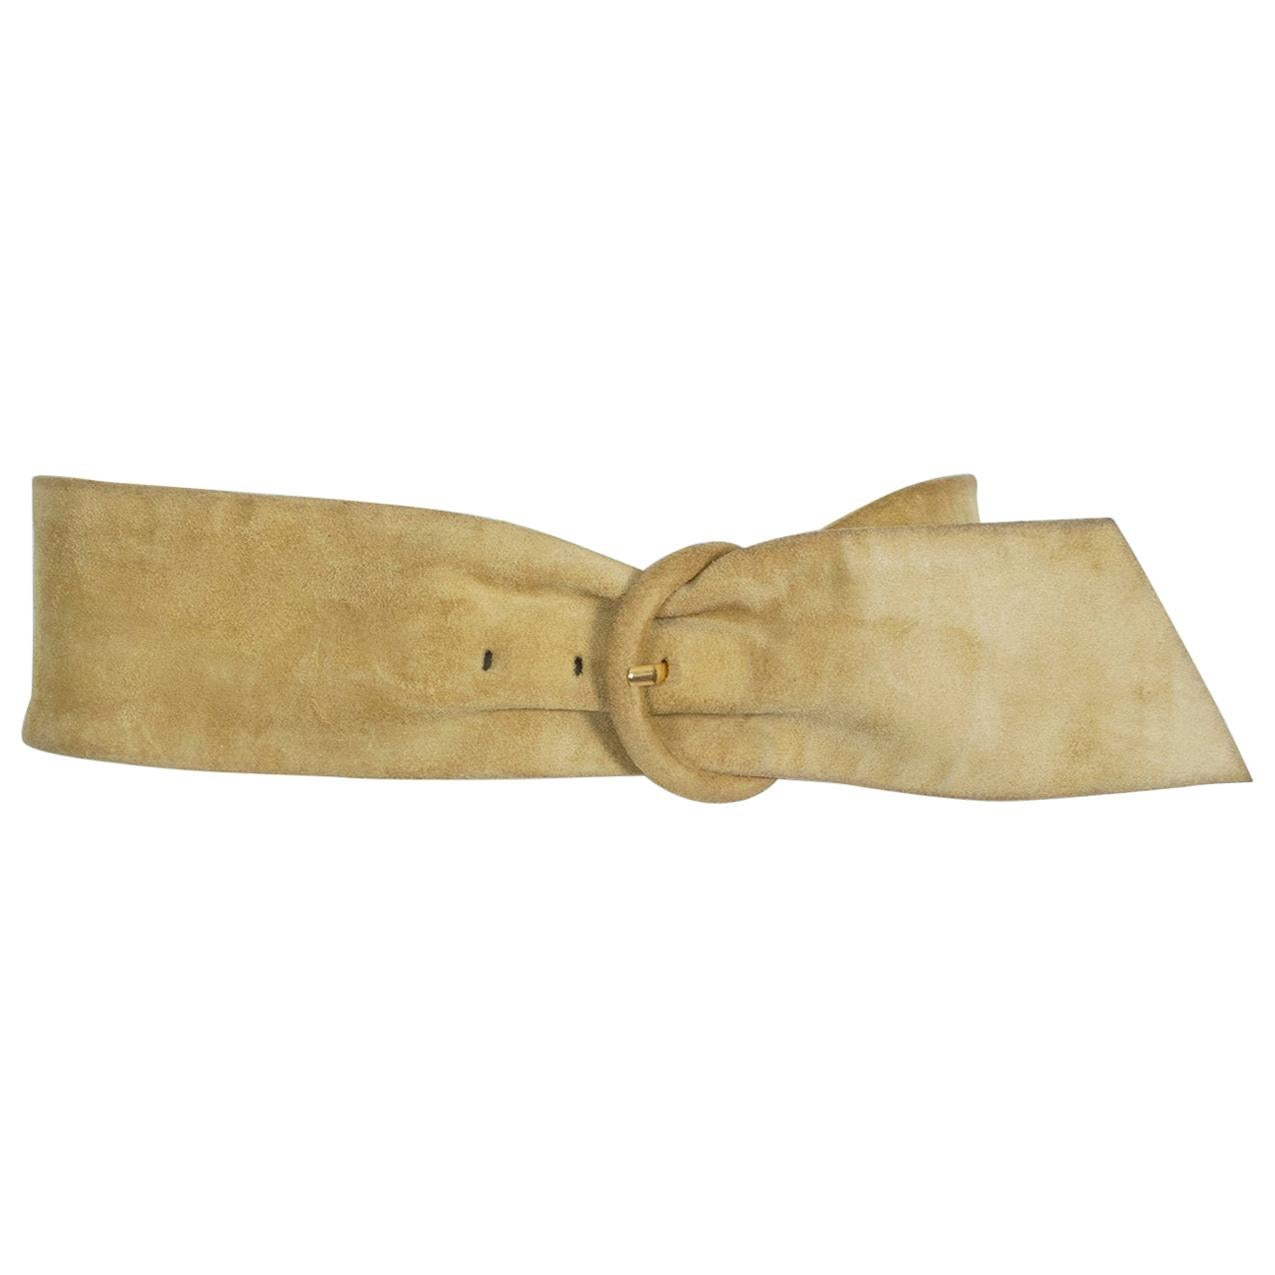 Yves Saint Laurent YSL Wide Camel Suede Belt with Covered Buckle – XS-S, 1980s